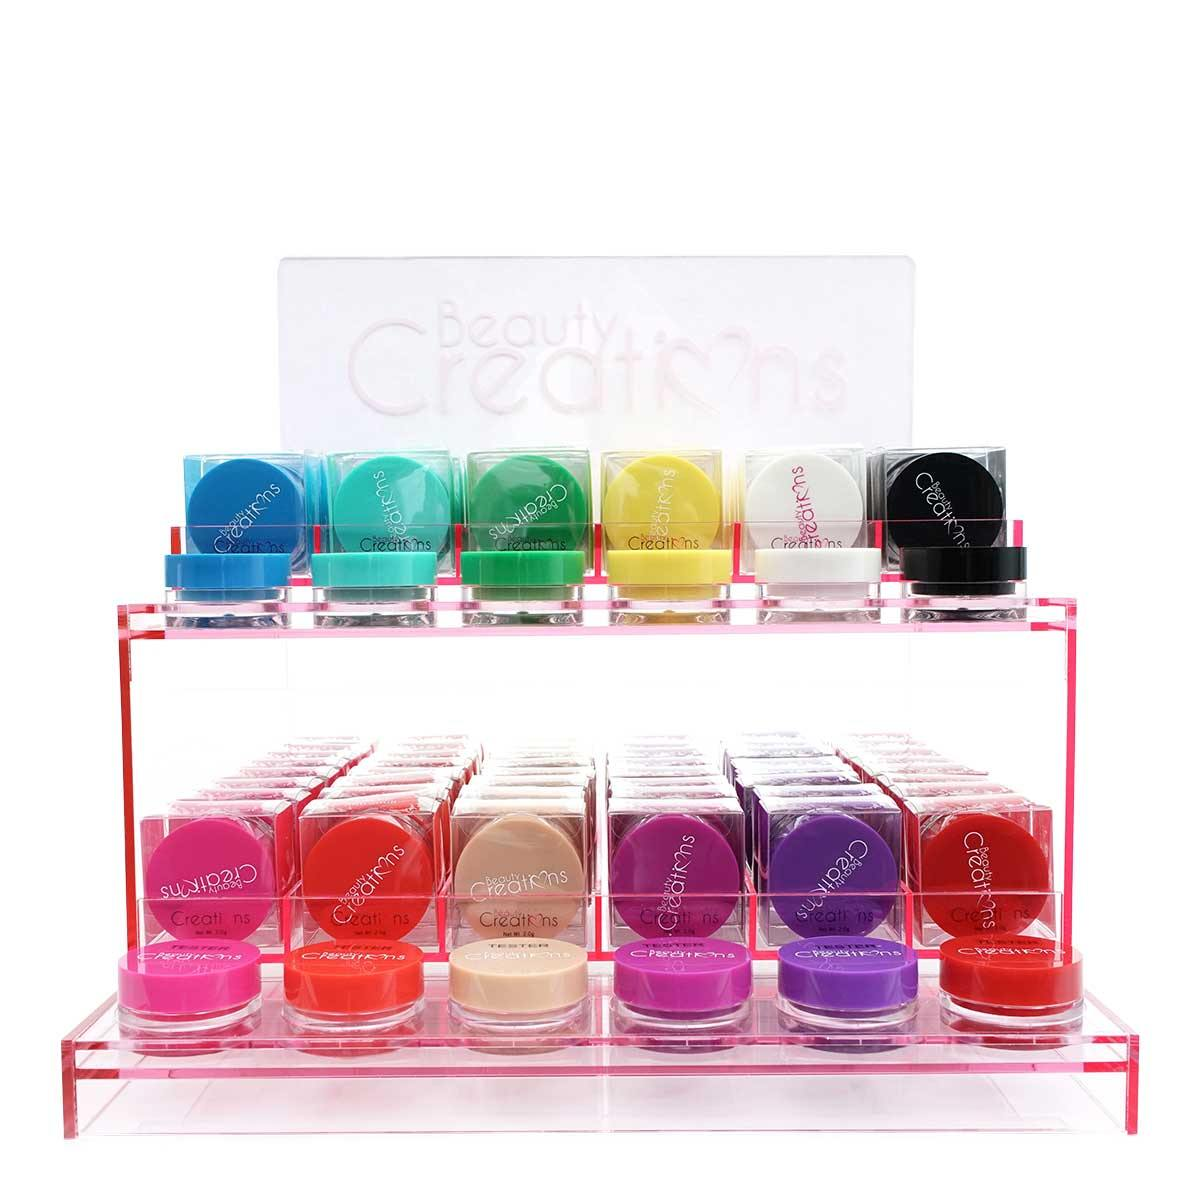 BEAUTY CREATIONS DARE TO BE BRIGHT GEL LINER DISPLAY- EGD (1/cs)